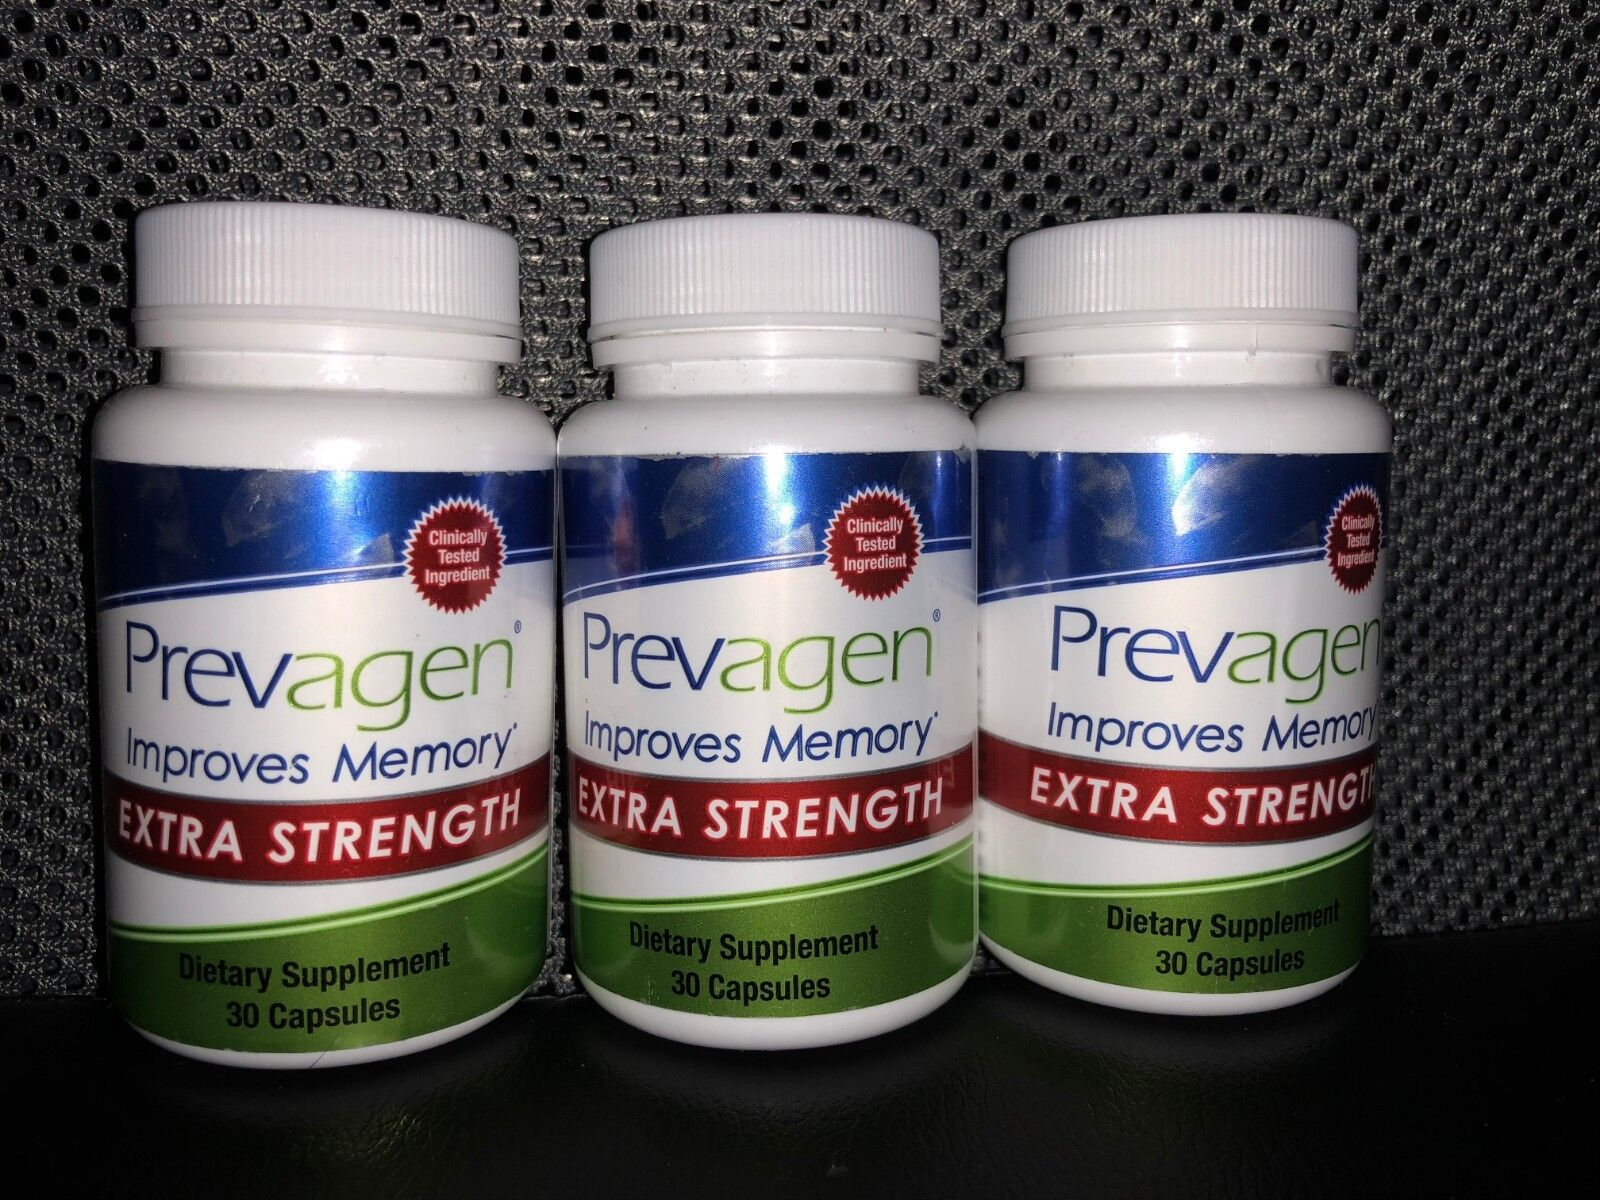 Prevagen Extra Strength 30 CT Improves Memory Quincy Bioscie